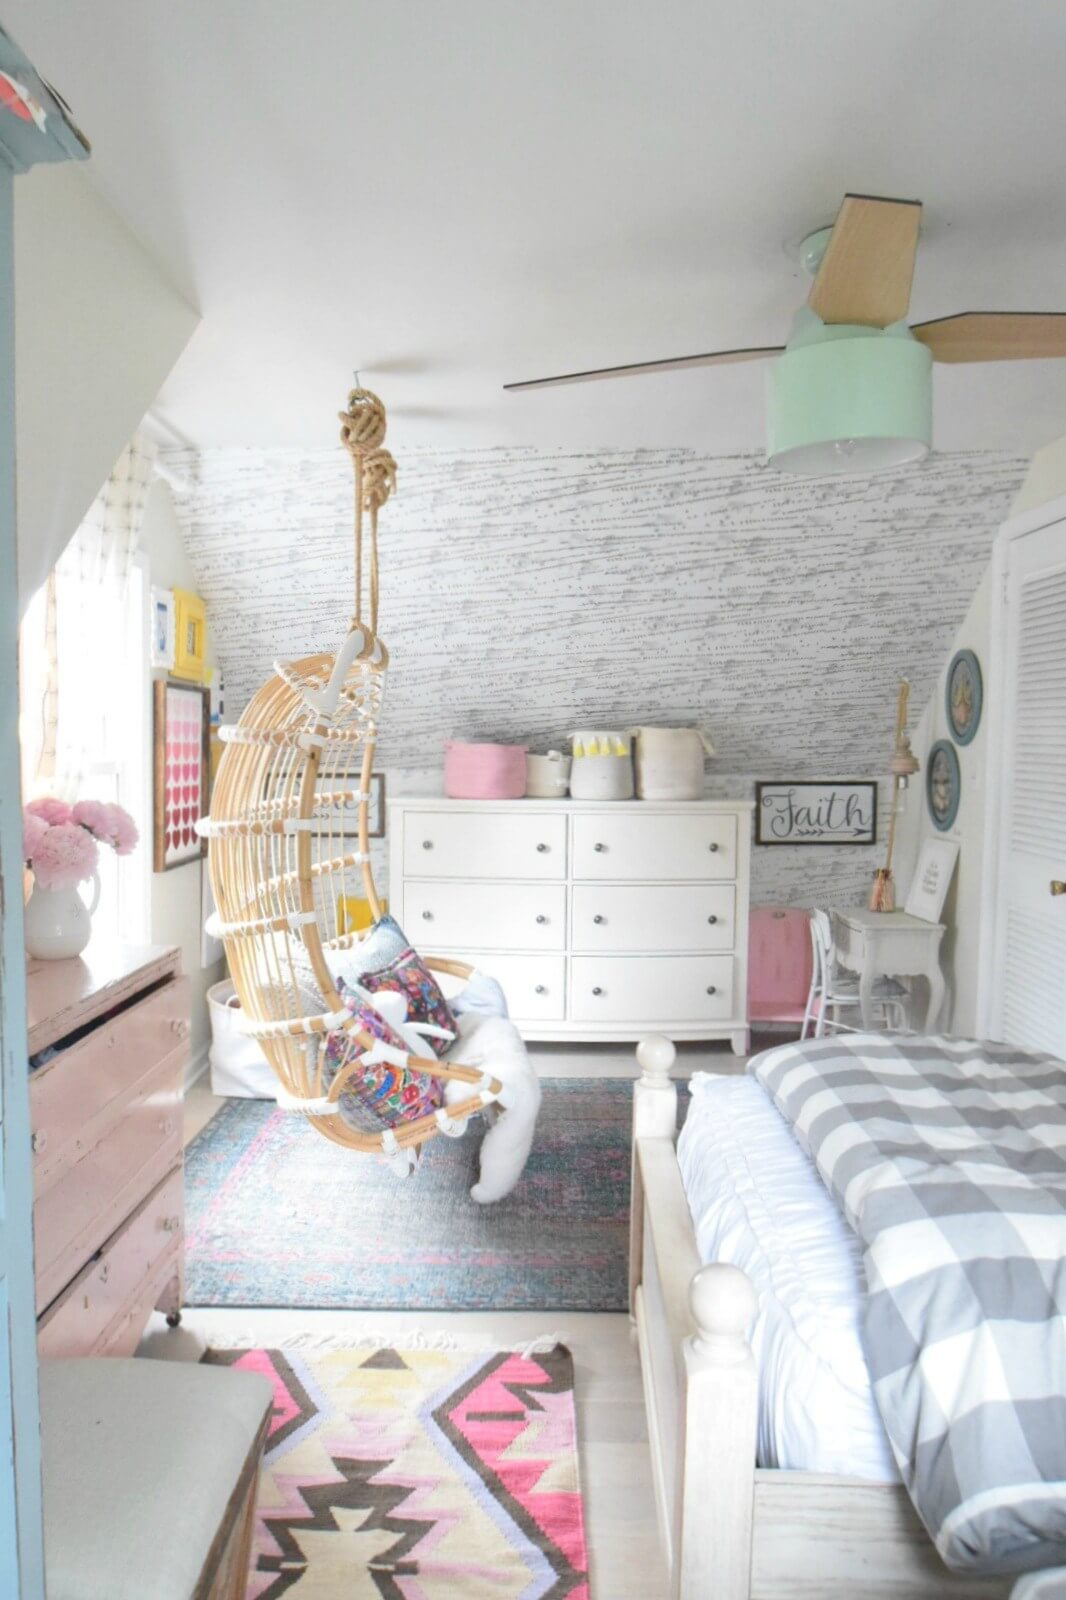 14 Best Trendy Bedroom Decor and Design Ideas for 2020 on Trendy Room  id=11601